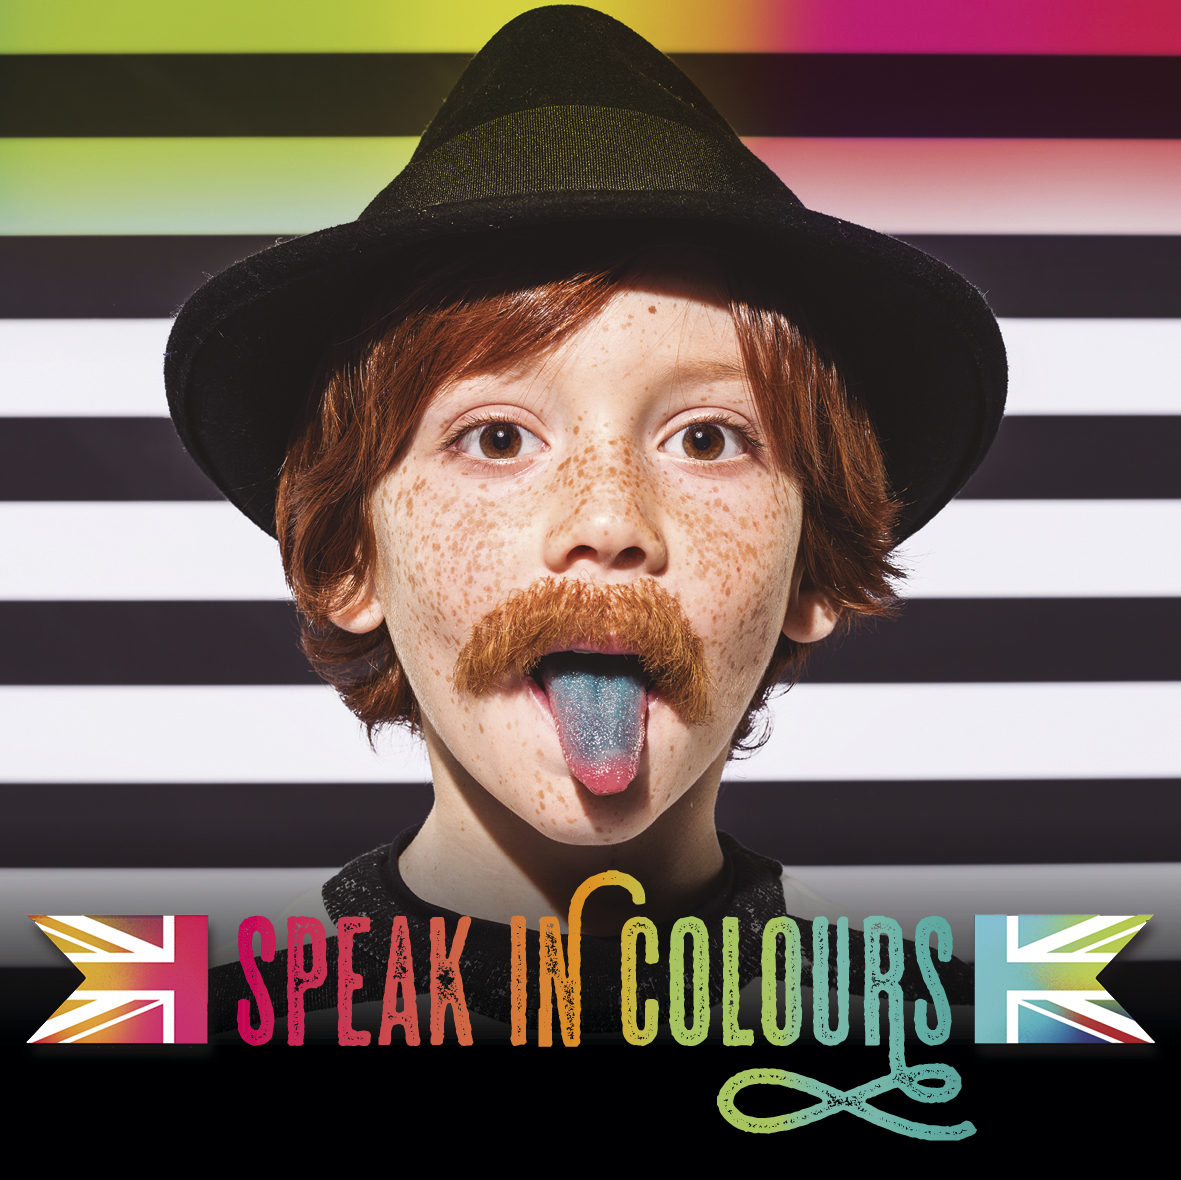 Tret de sortida de la nova campanya de TV de Kids&Us: Speak in Colours